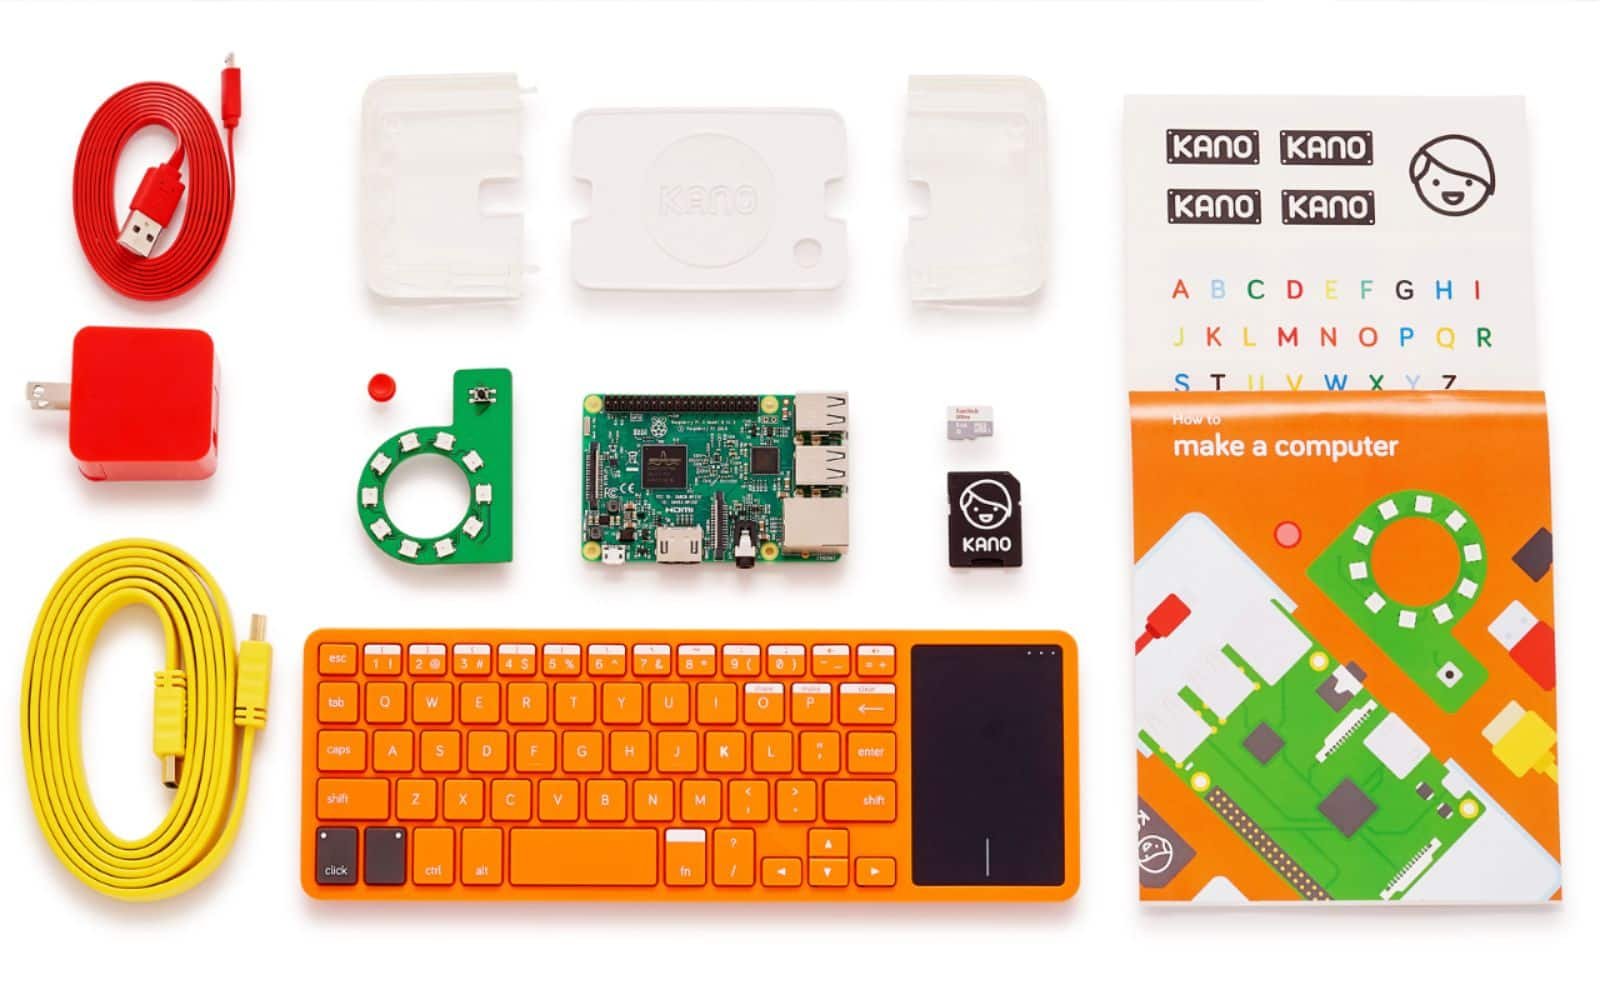 Kano Computer Kit $60.99 at Best Buy or Amazon.